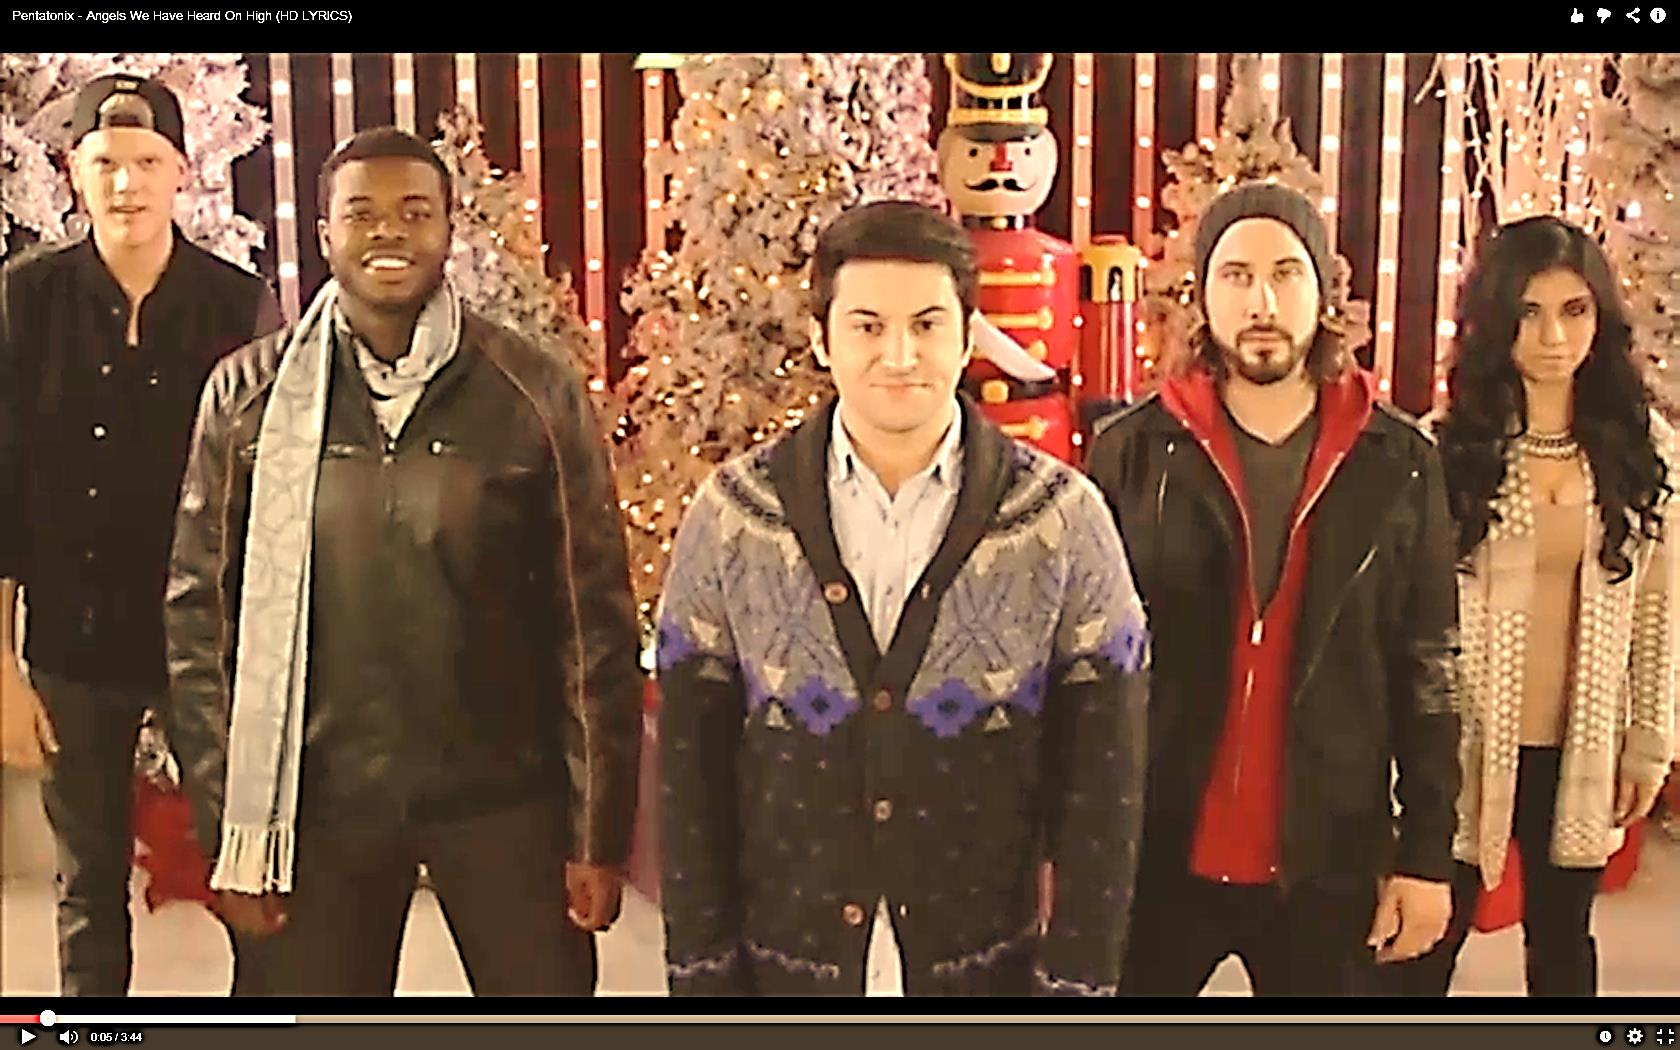 enjoy your christmas day with this pentatonix video